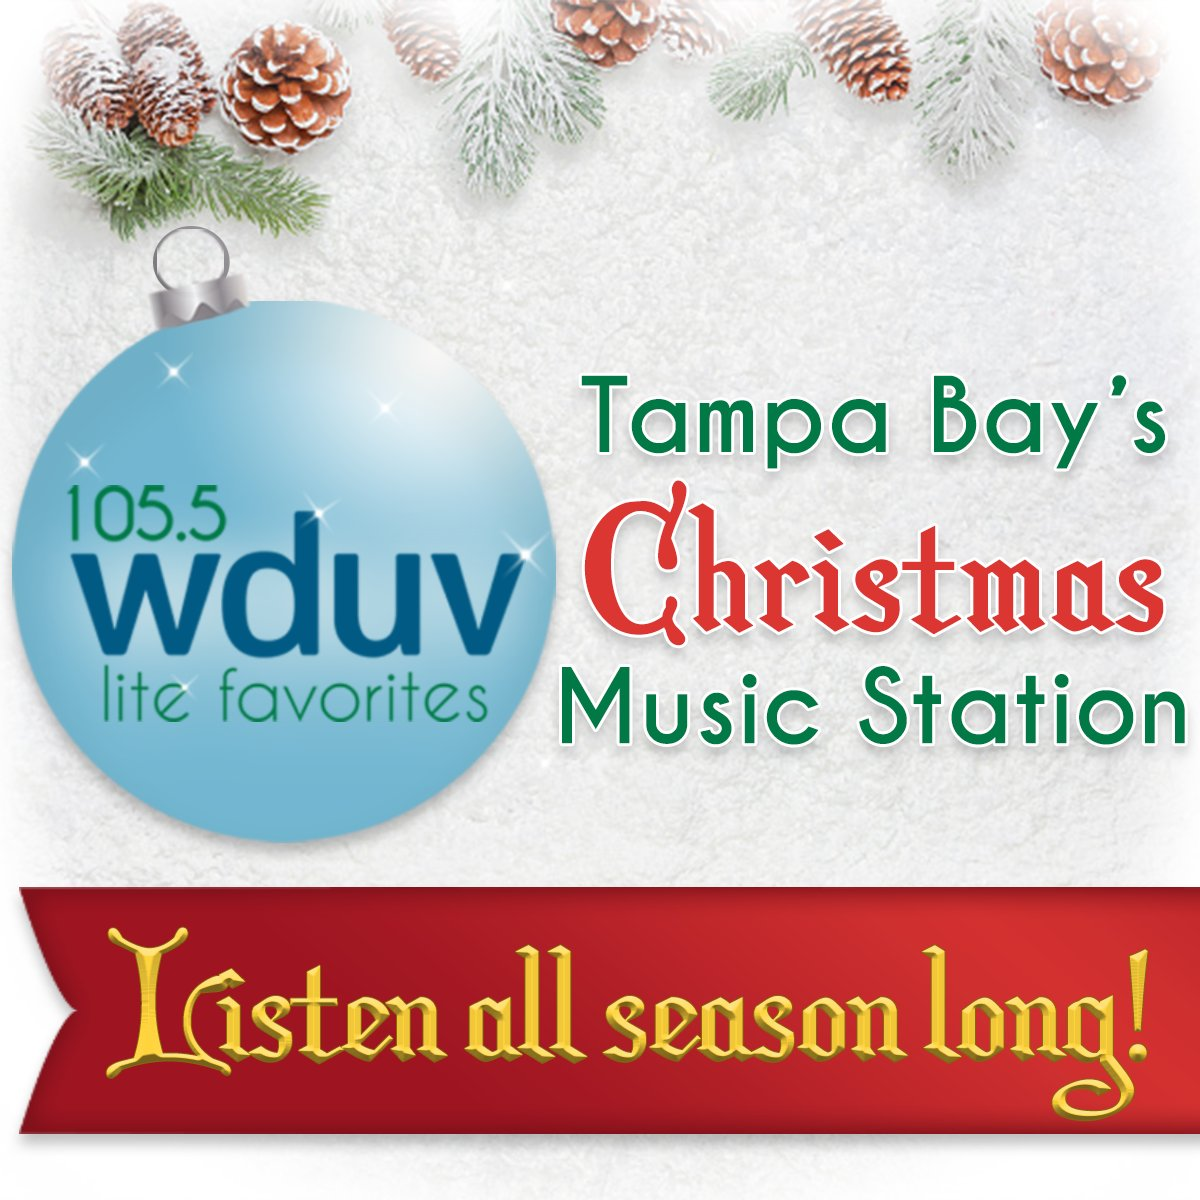 Stream Christmas Music.105 5 Wduv On Twitter Tampa Bay S Christmas Music Station